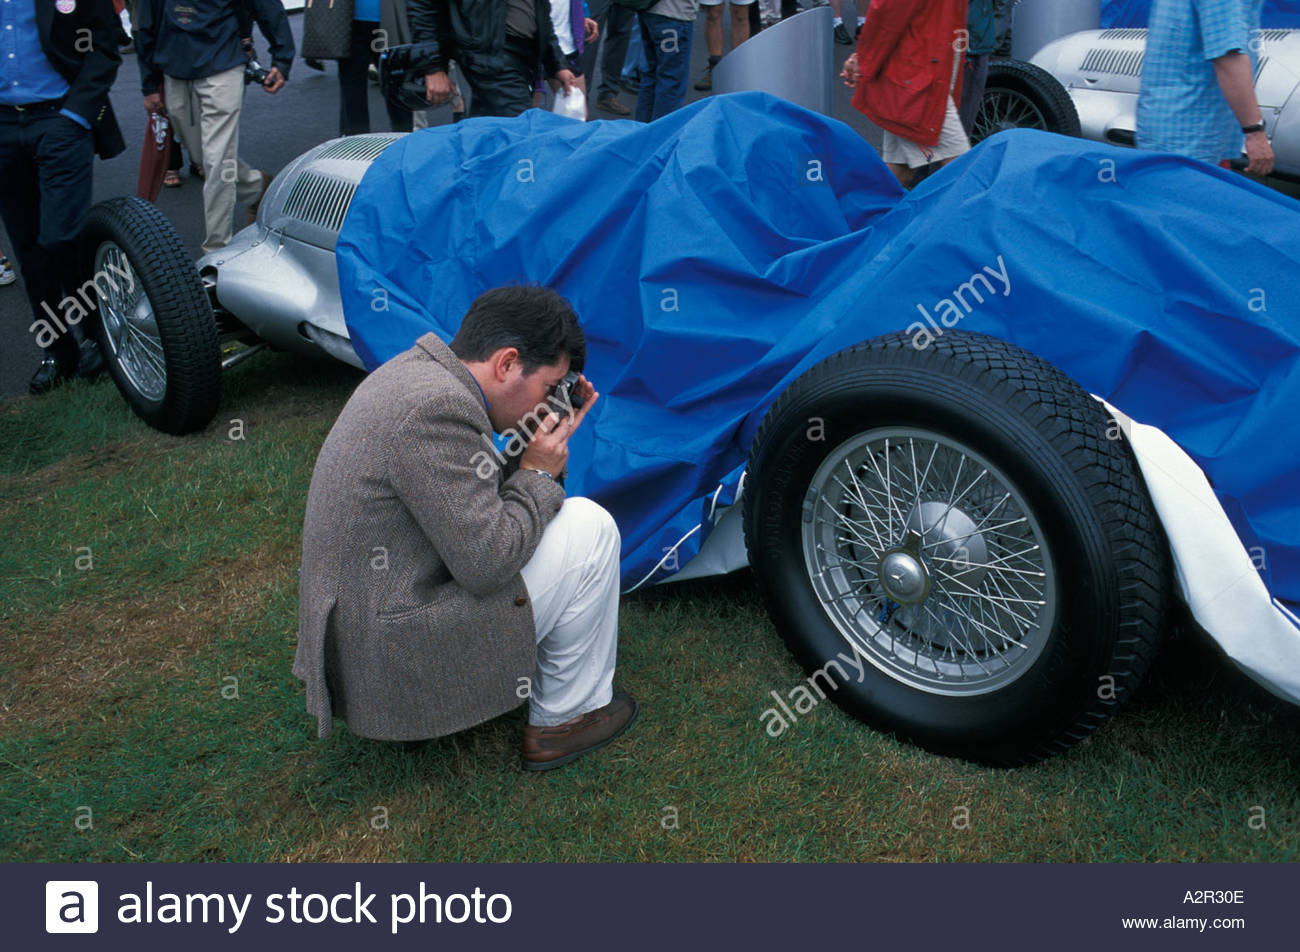 Wiring Mercedes Benz Racing Reinvent Your Diagram 2003 S500 Engine A During Race Stock Photos Rh Alamy Com 2004 Fuse